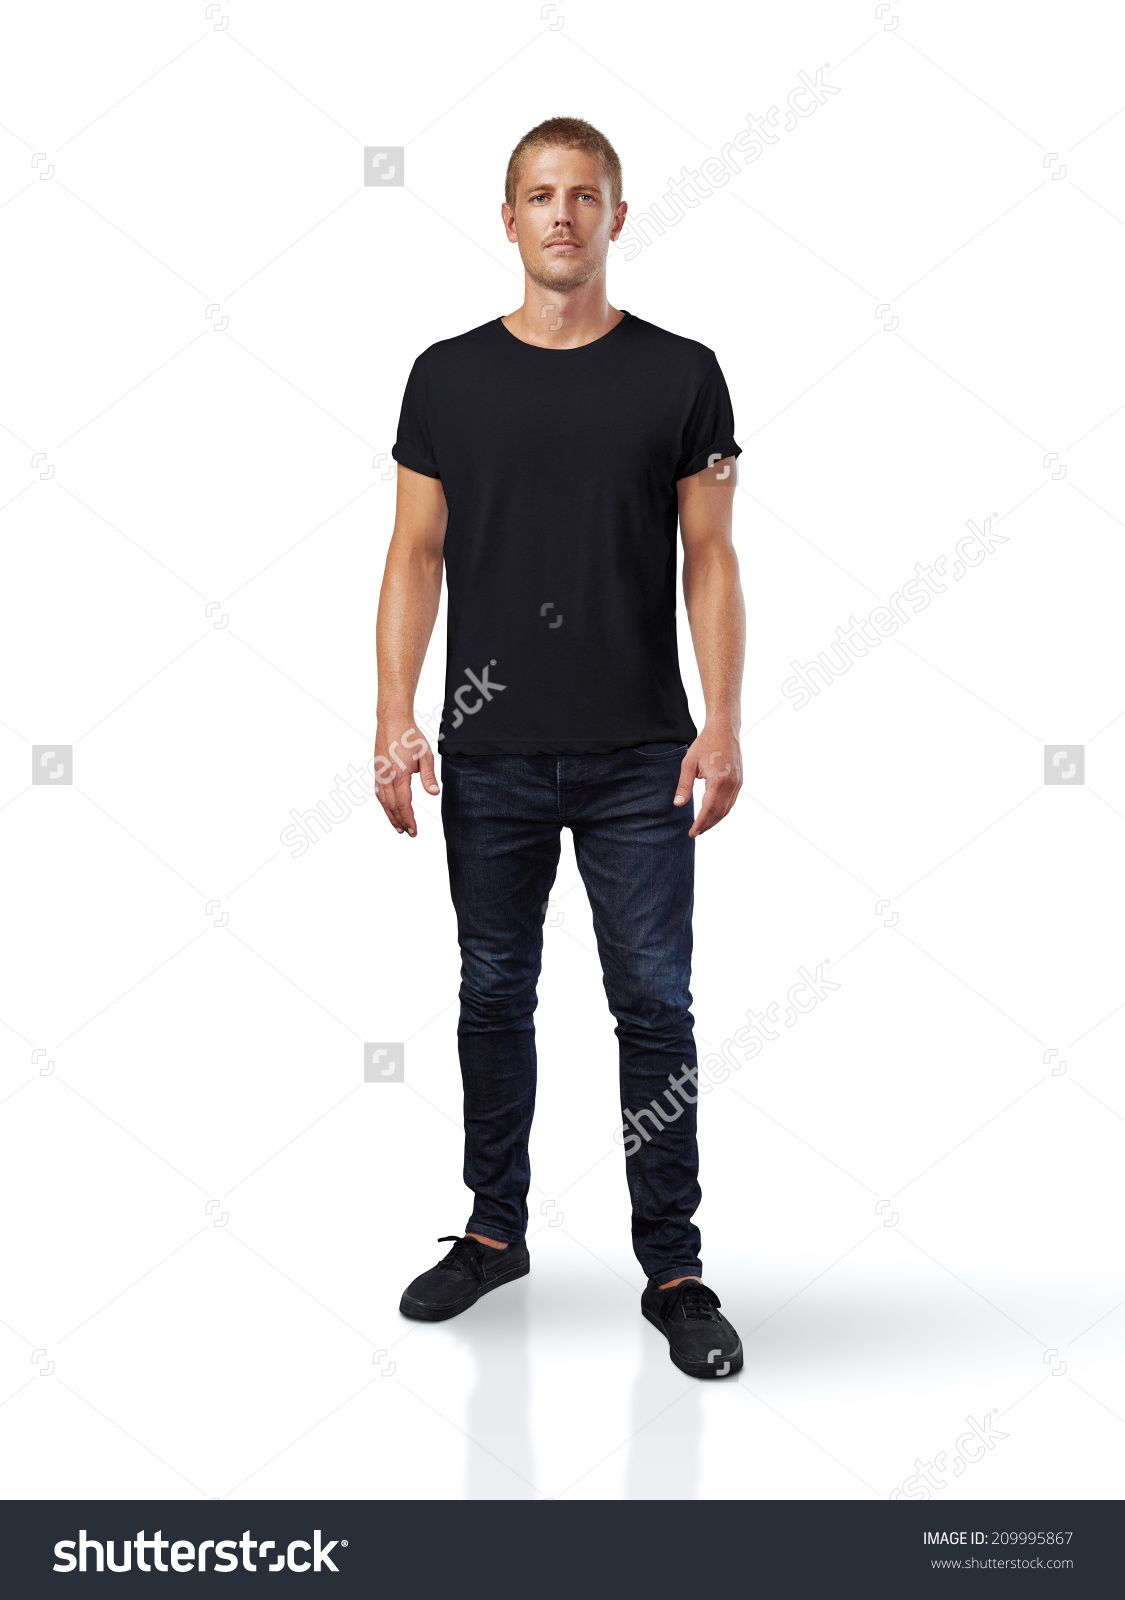 Image result for man wearing black t shirt | The Arsonists ...